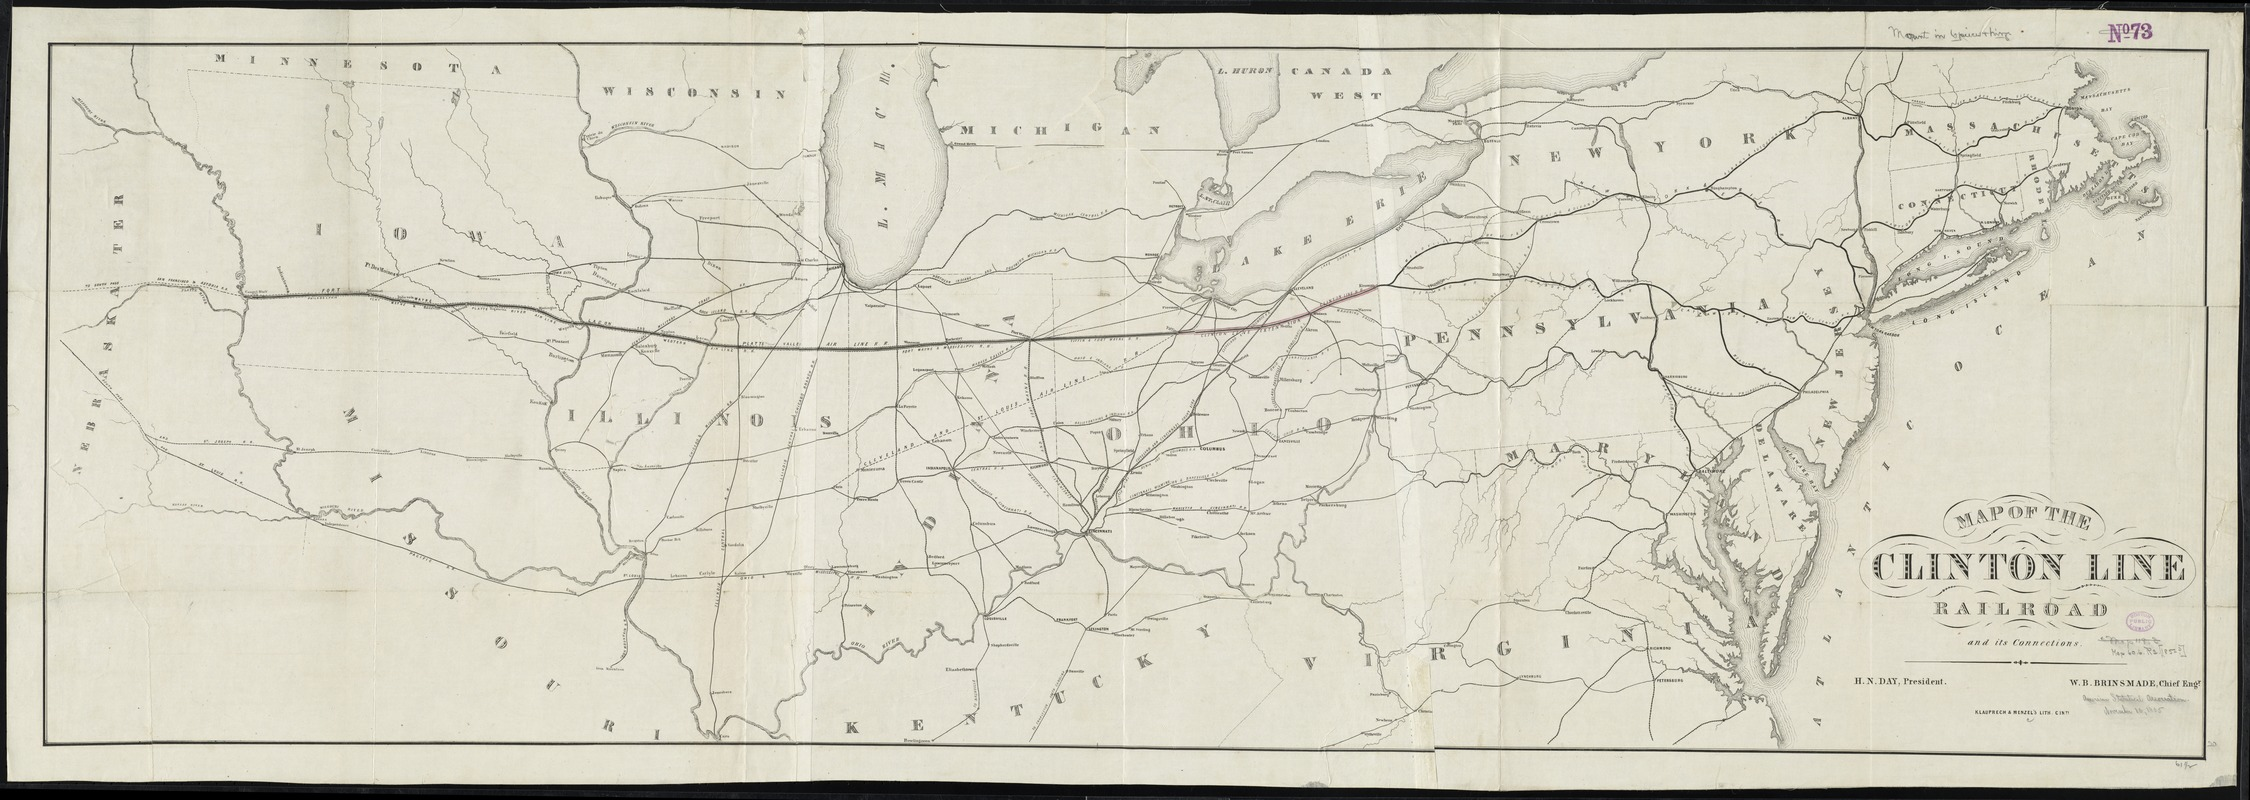 Map of the Clinton Line Railroad and its connections